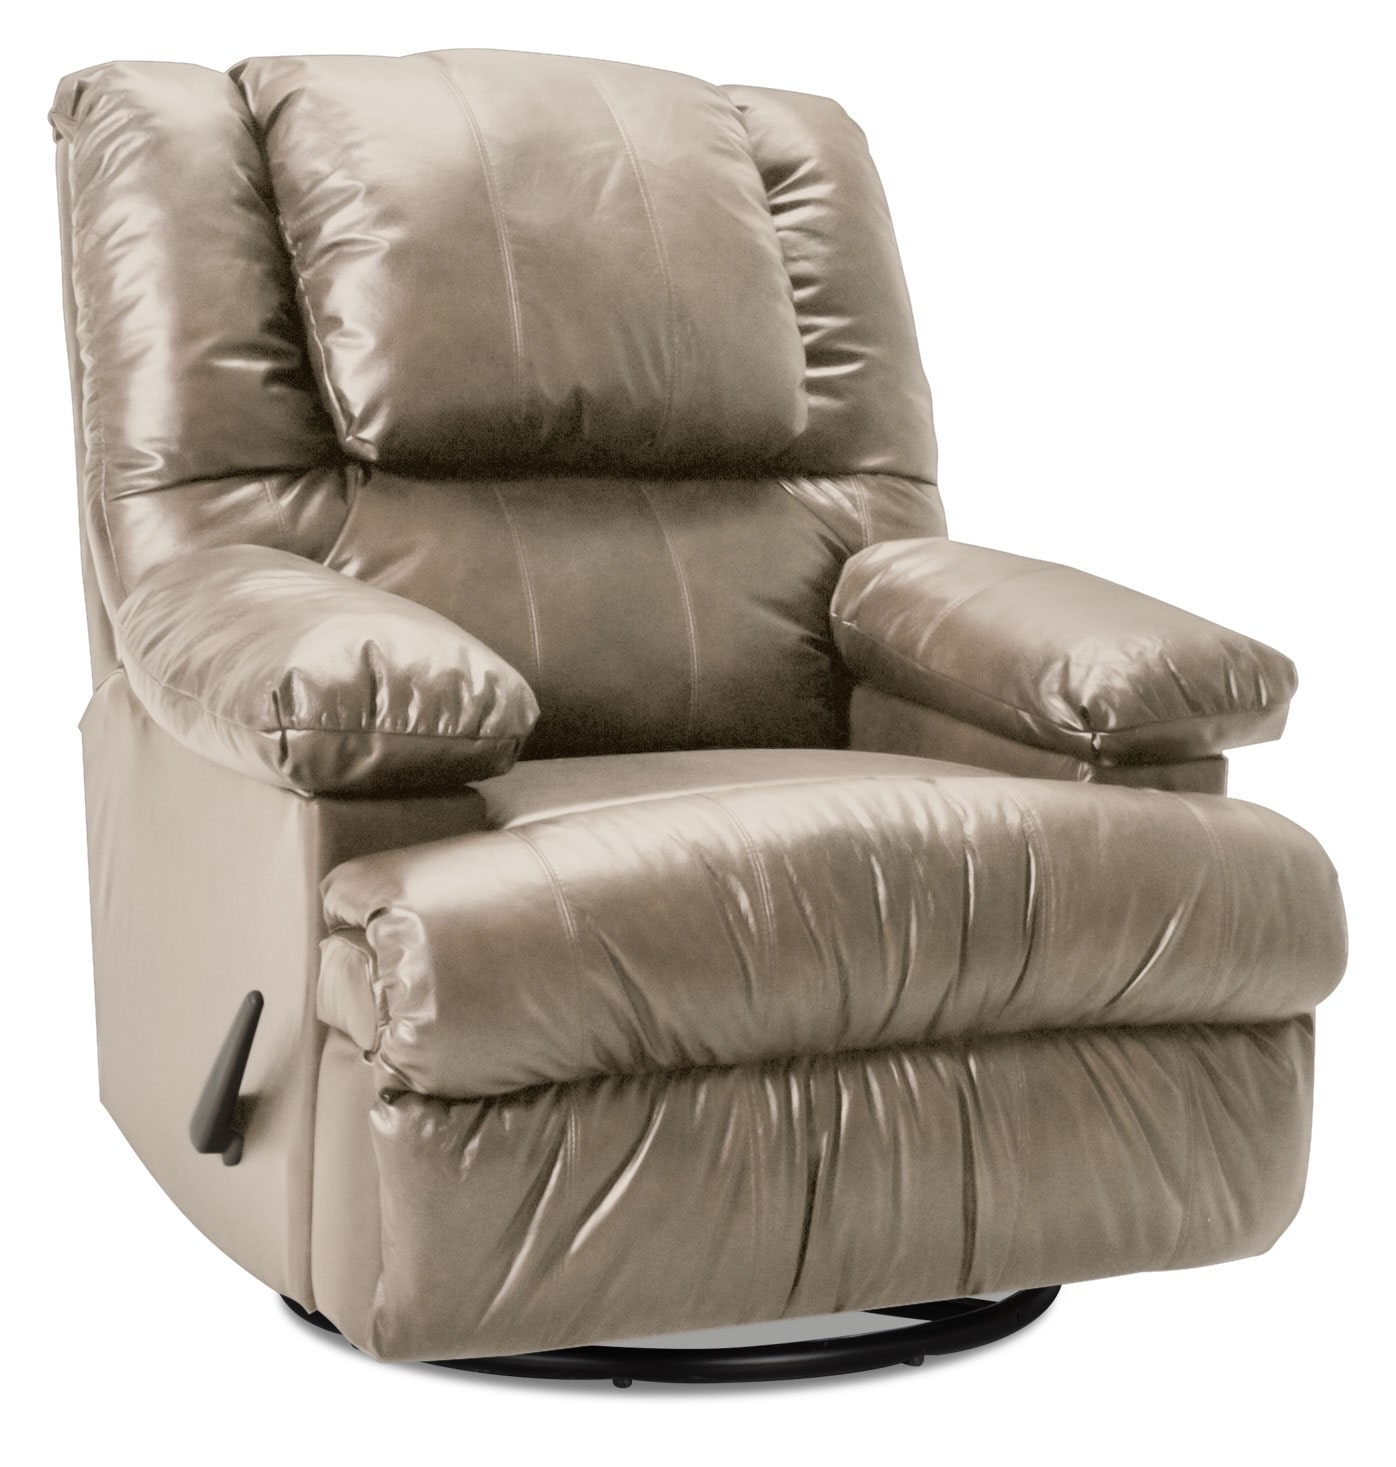 Designed2B Recliner 5598 Bonded Leather Swivel Rocker with Storage Arms - Putty